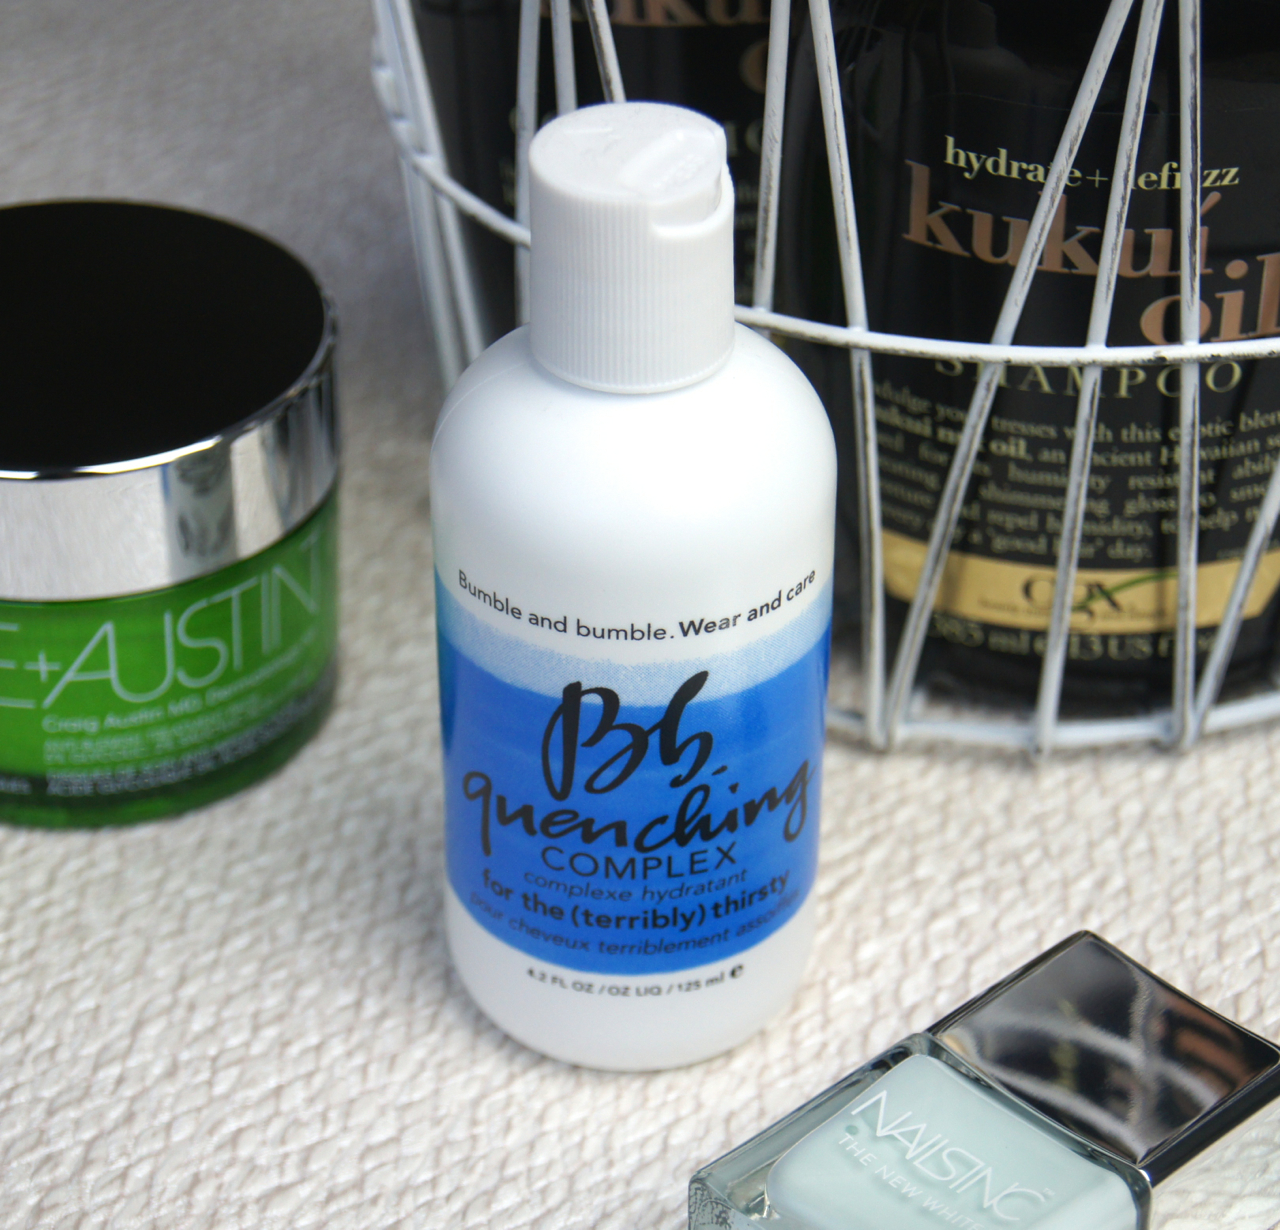 bumble and bumble quenching complex leave in treatment